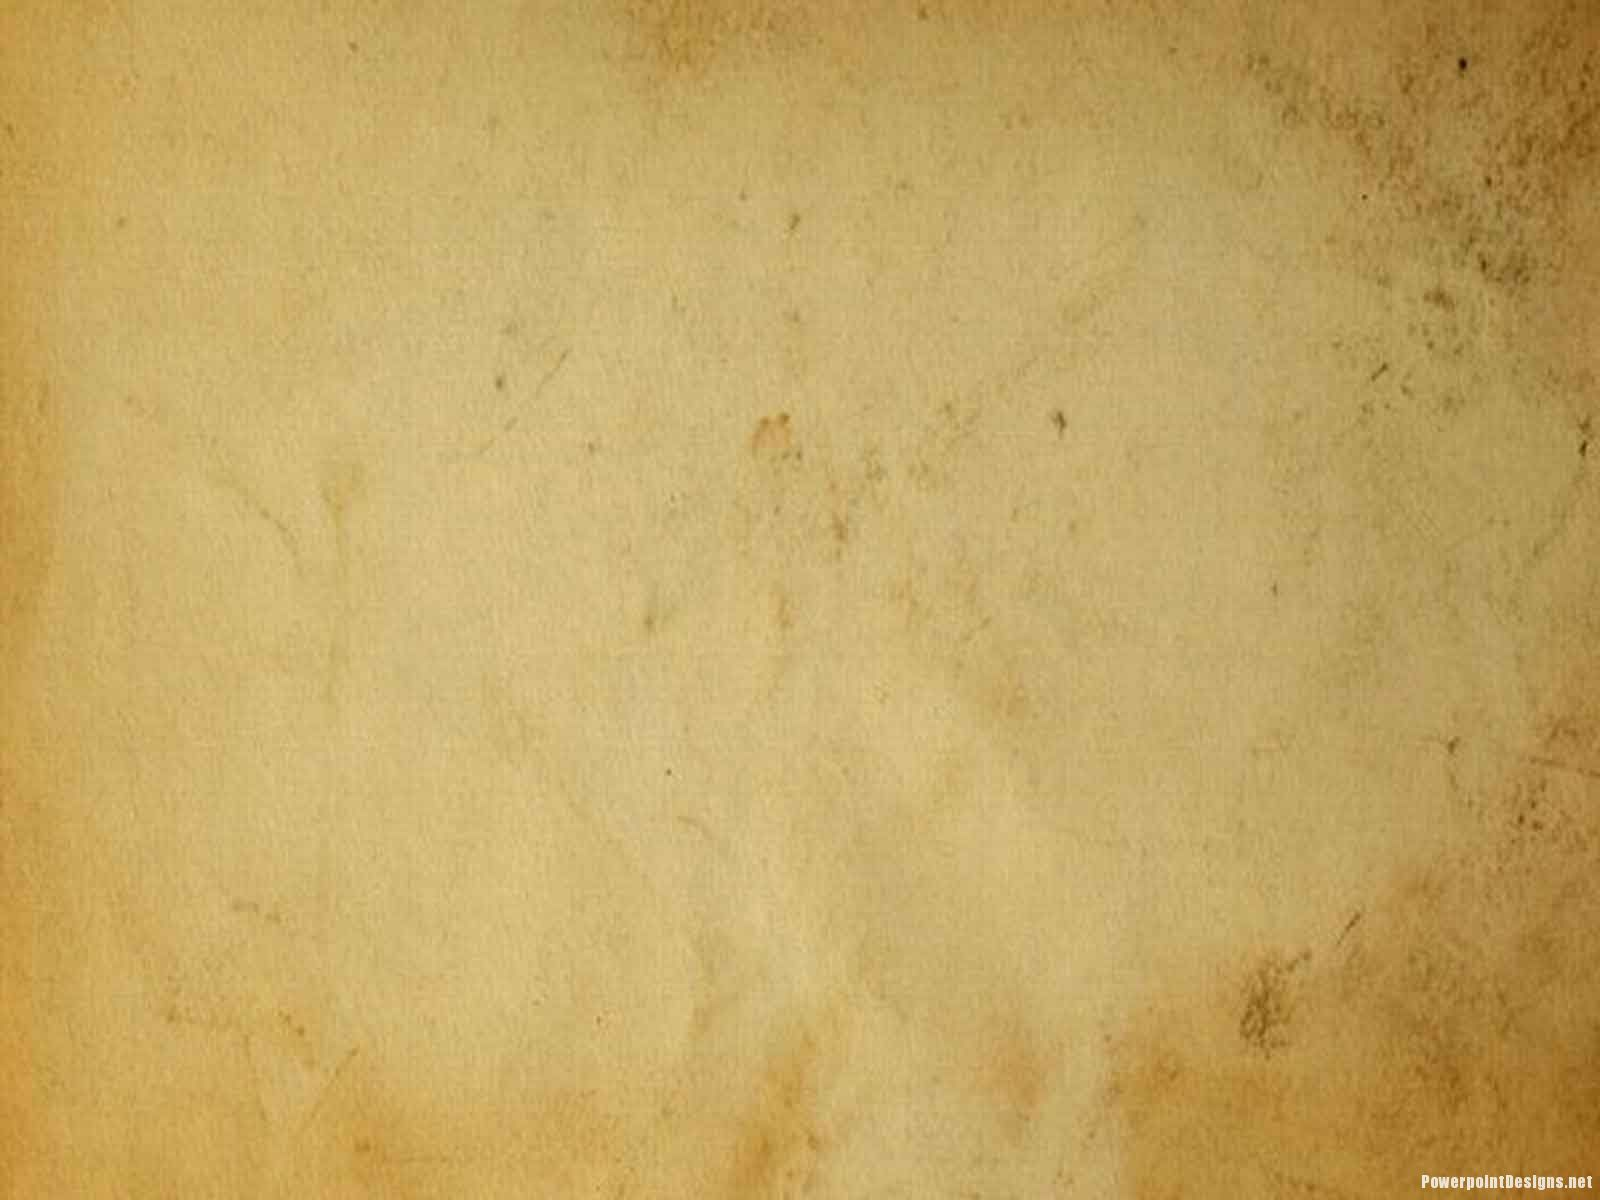 Dirty Vintage Paper Background